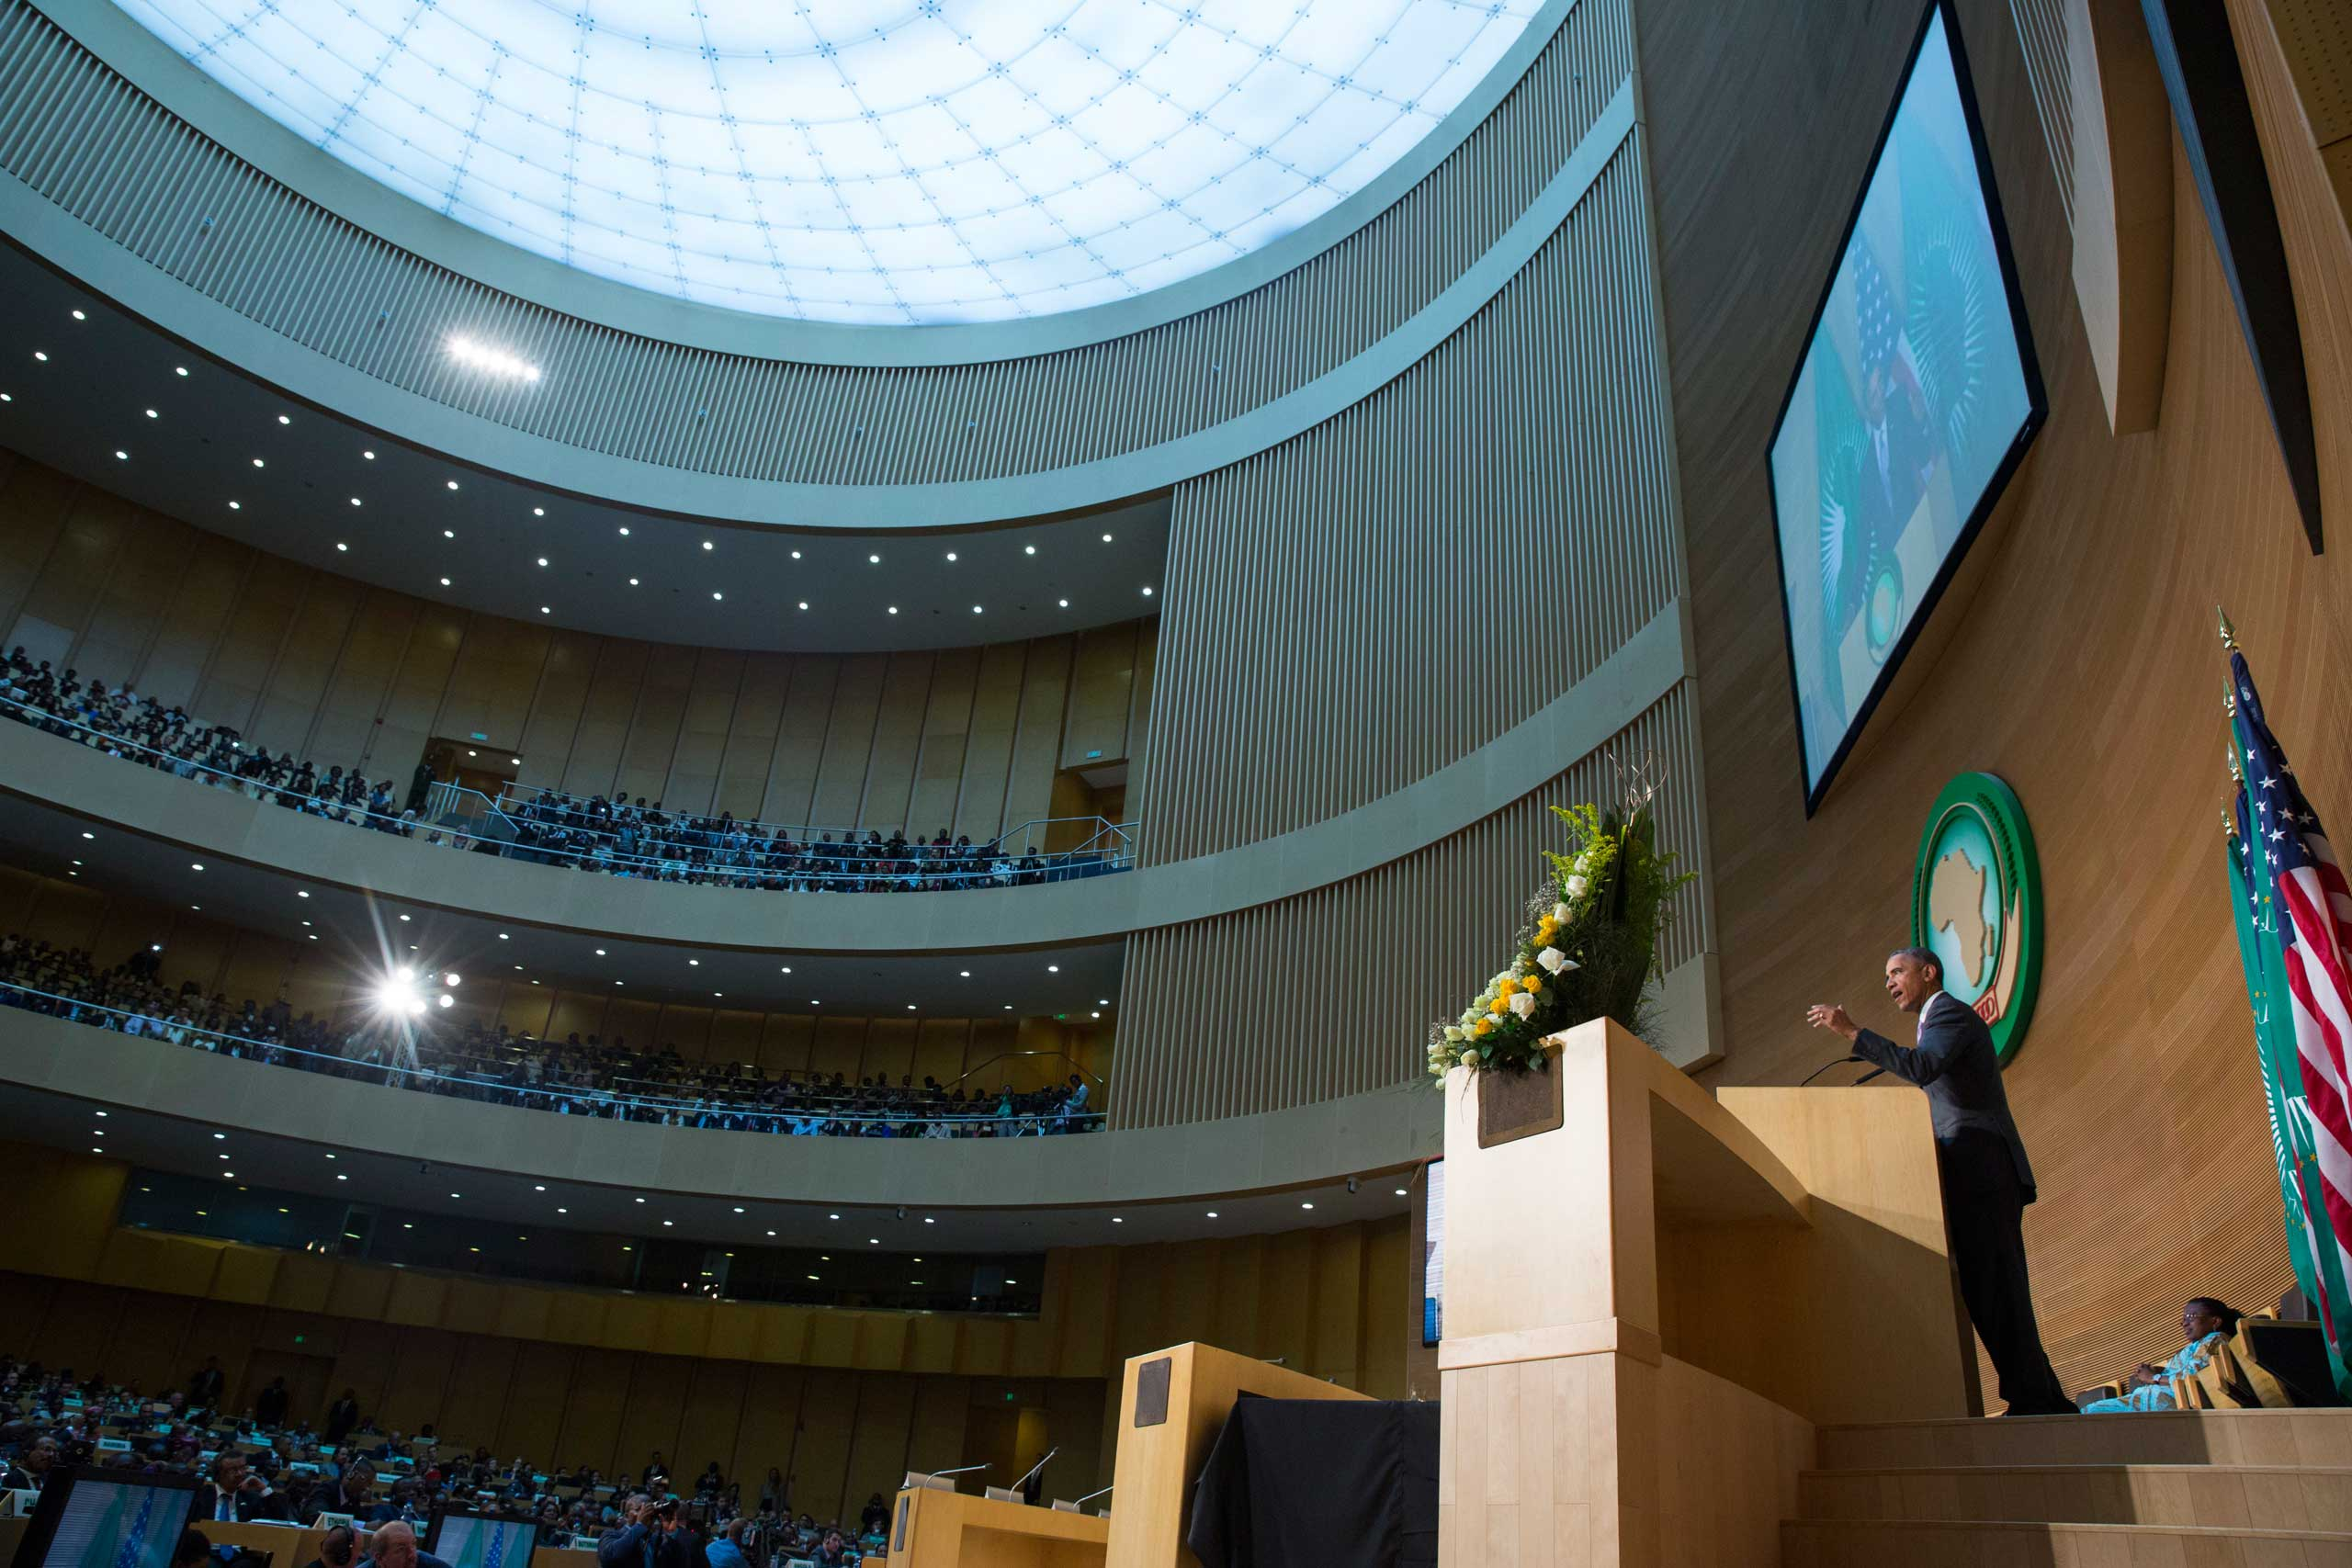 President Barack Obama delivers a speech to the African Union in Addis Ababa on July 28, 2015.